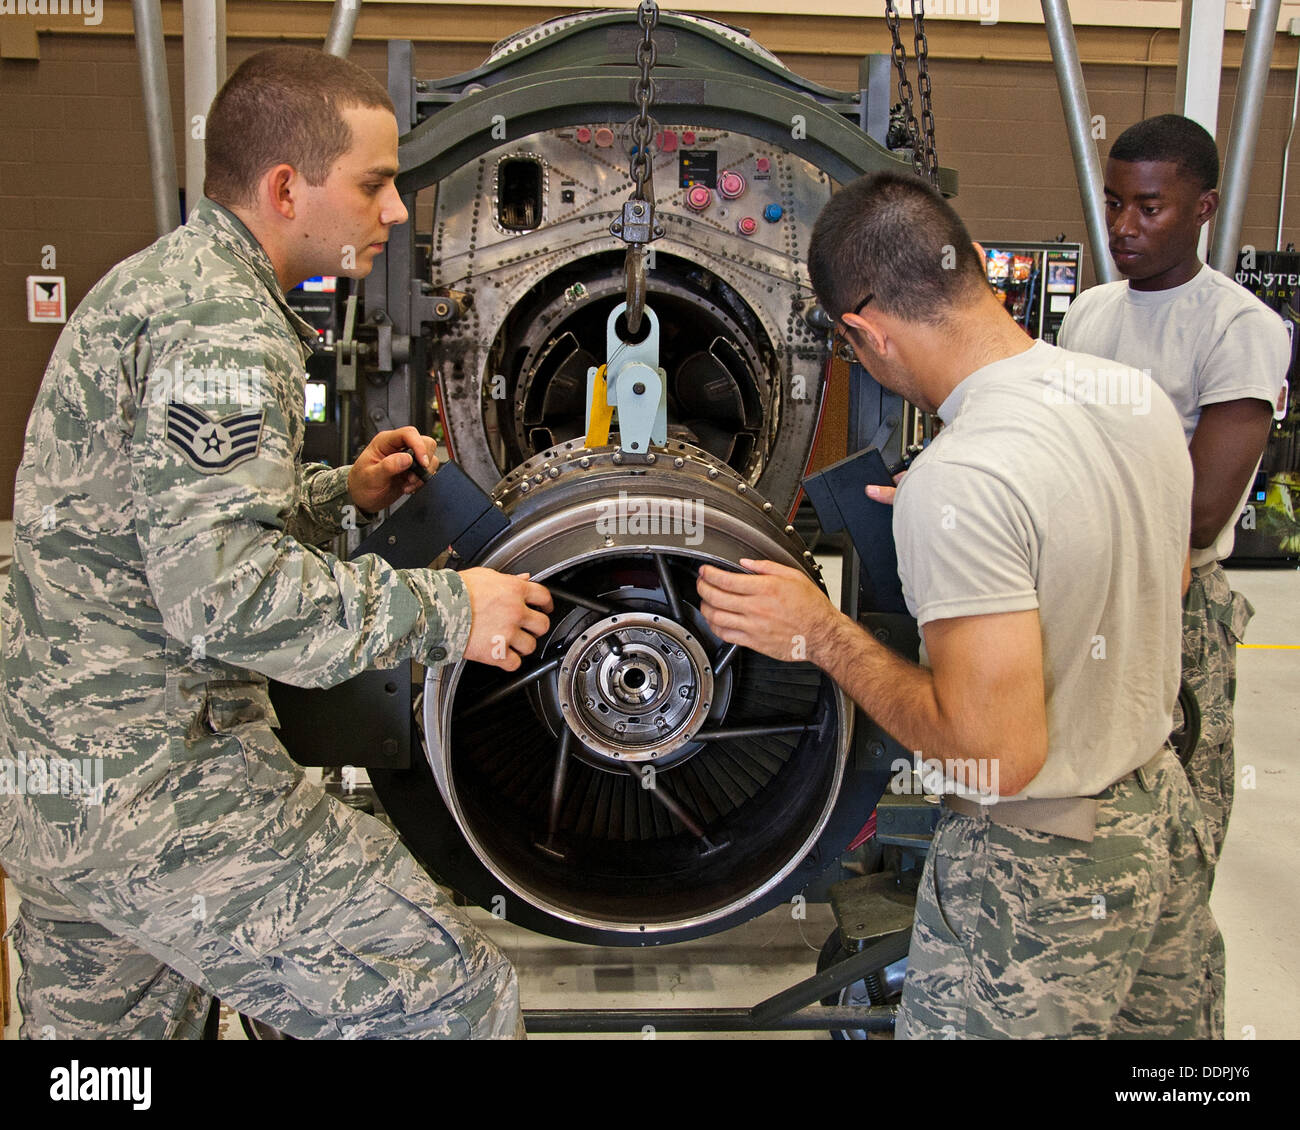 U.S. Air Force Instructor Staff Sgt. Christopher Walker, Airman Vivek Lebouef and Harold Griffen, 361st Training Squadron, Jet Propulsion course are removing an engine turbine from a C-130 aircraft on August 27, 2013 at Sheppard Air Force Base, Texas. - Stock Image